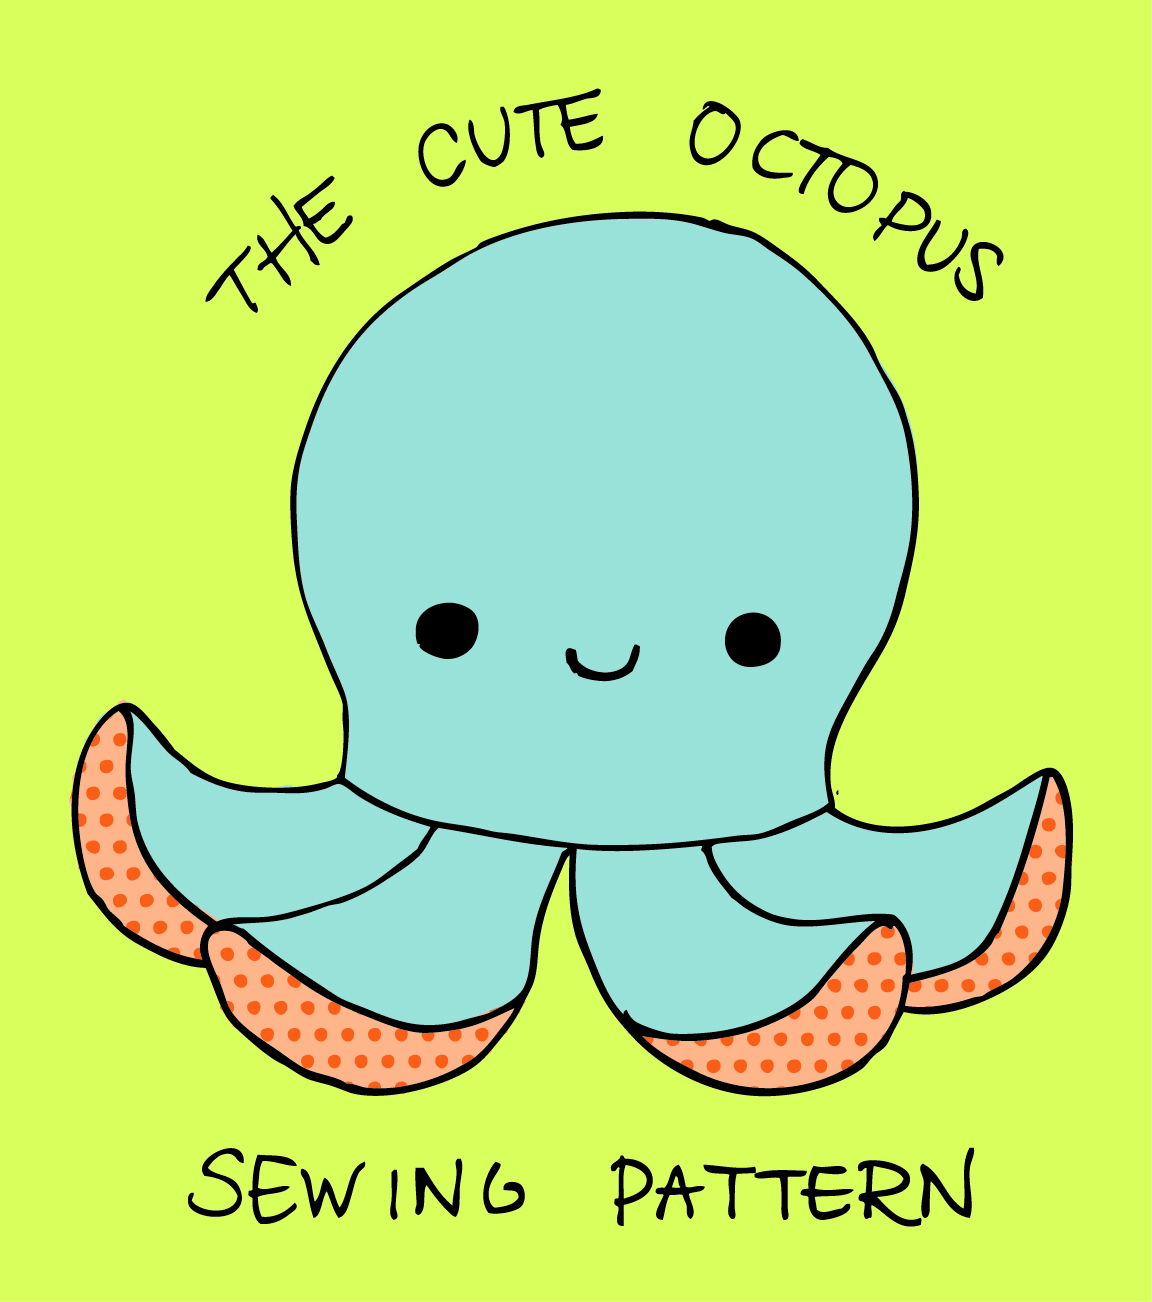 Cute Octopus Template Project Cute Octopus Pattern